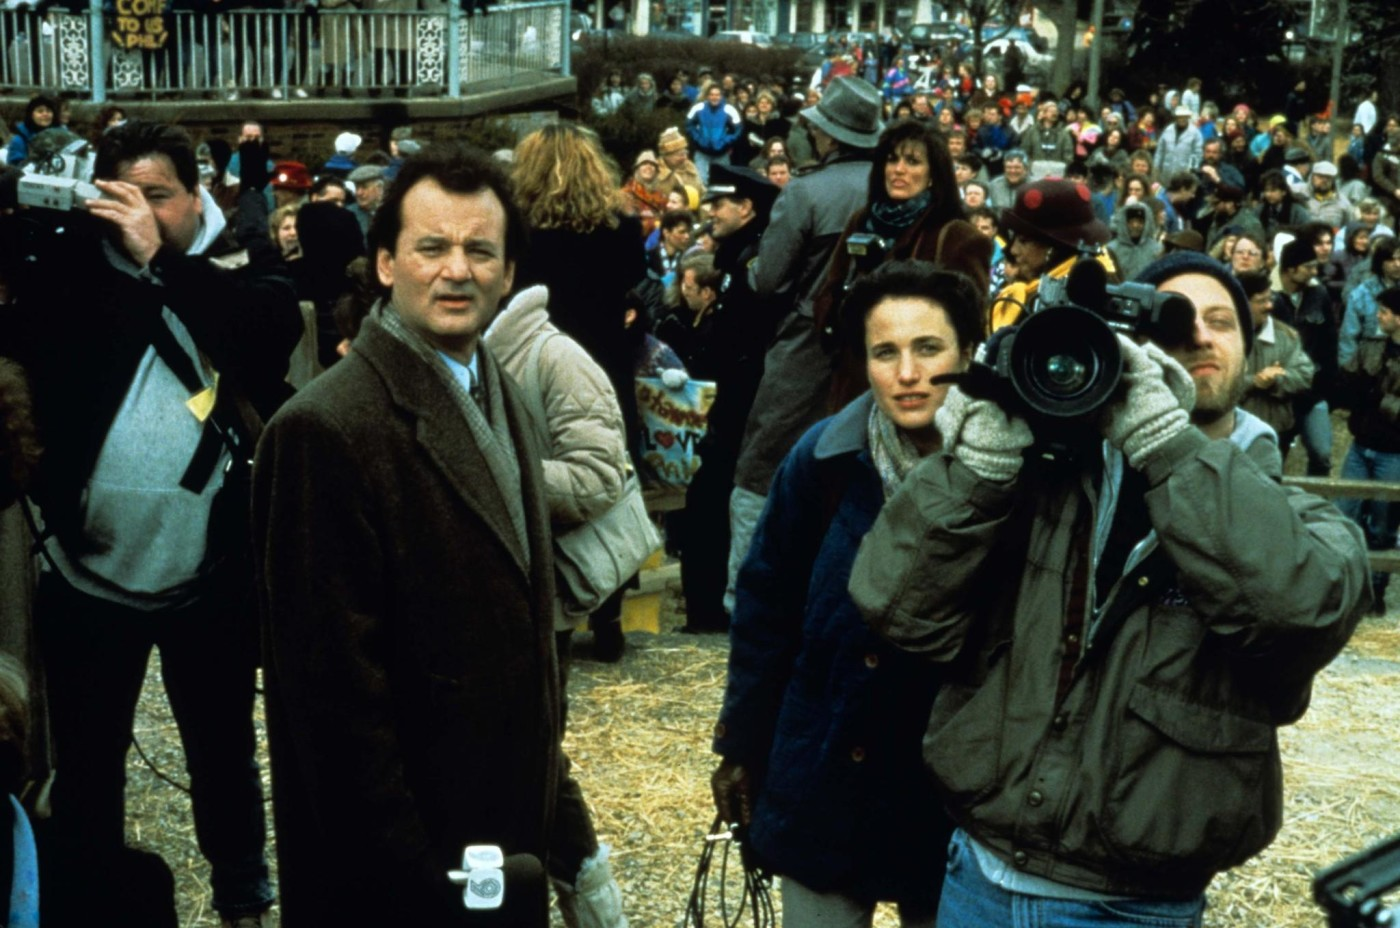 still-of-bill-murray,-andie-macdowell-and-chris-elliott-in-groundhog-day-(1993)-large-picture